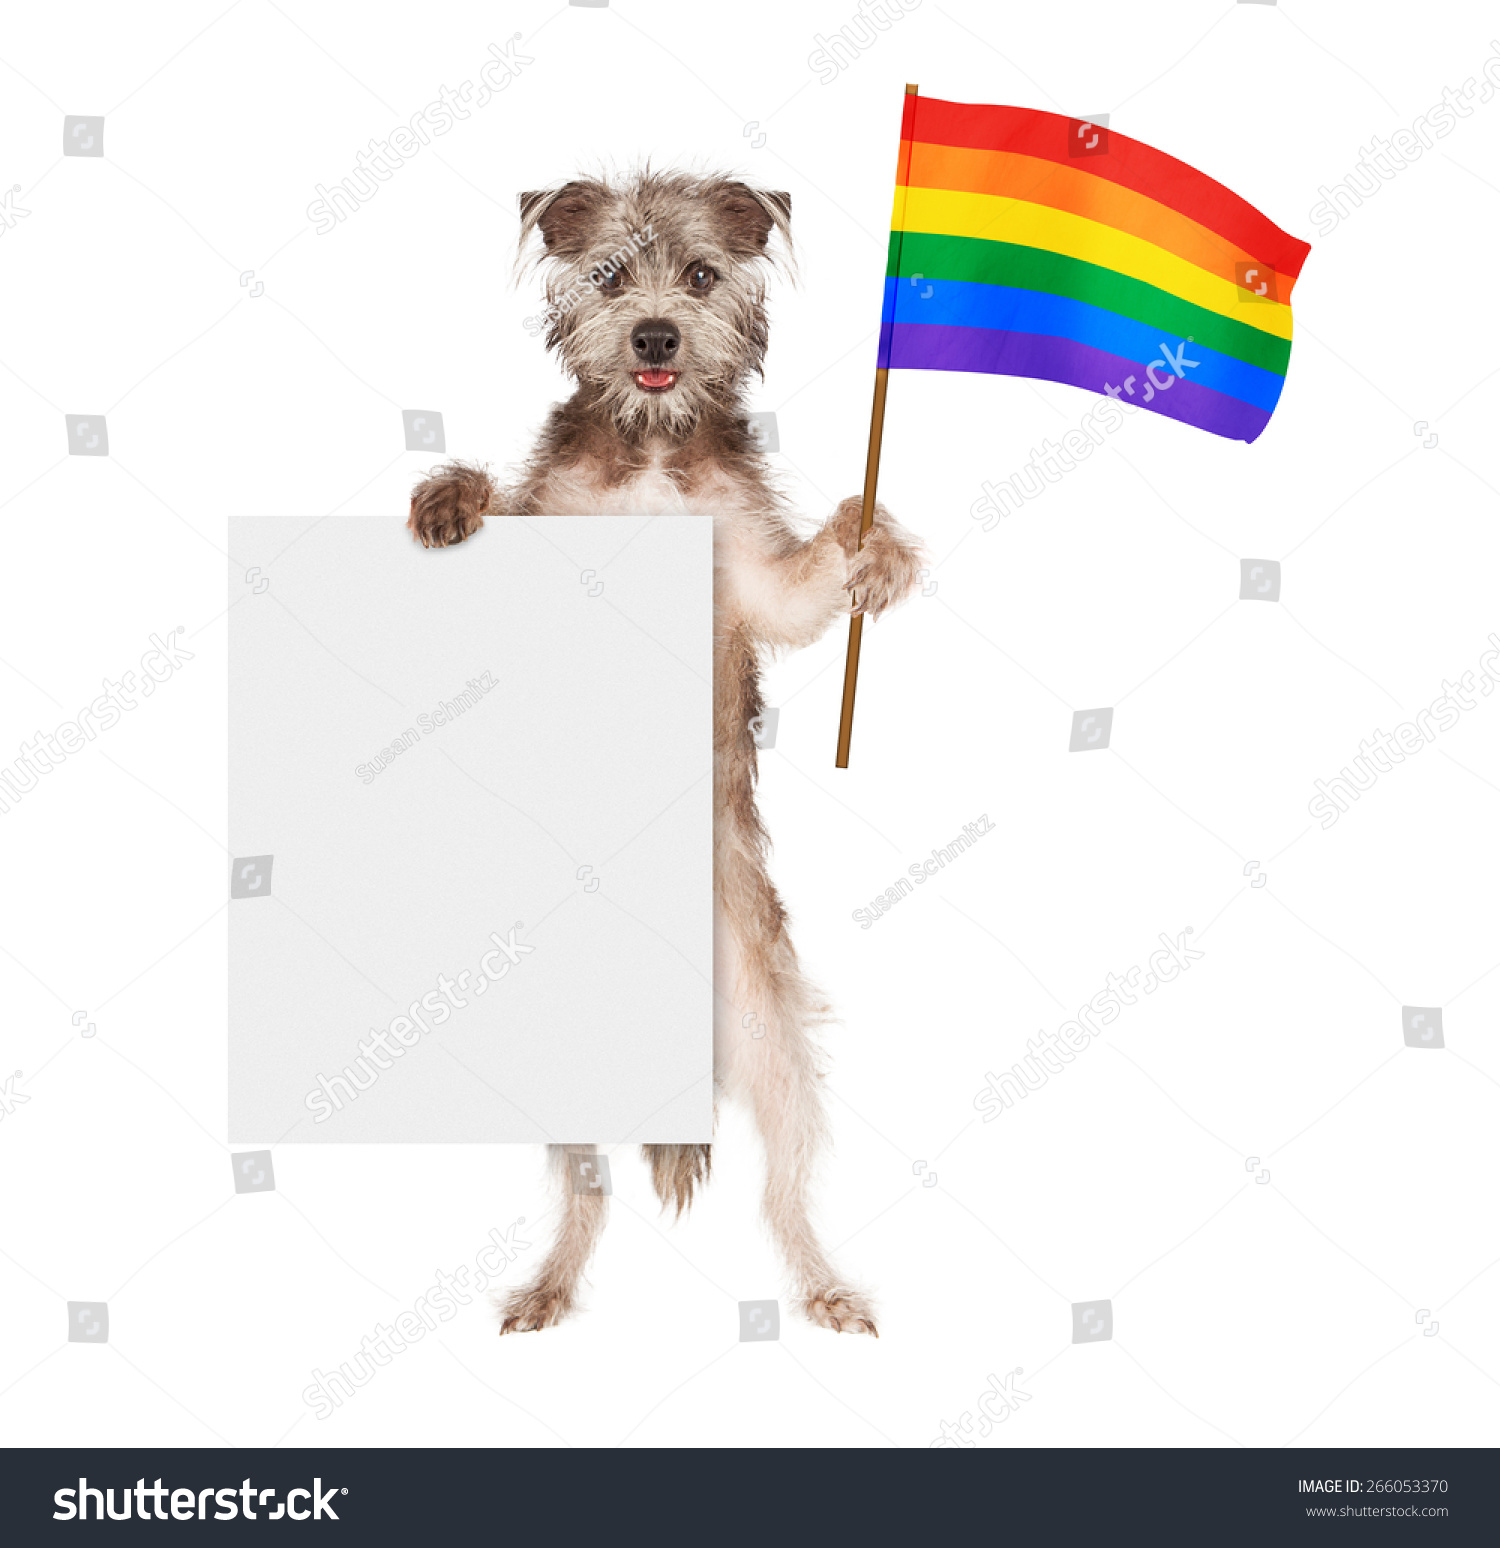 a happy and smiling dog standing up and holding a blank white sign and a rainbow